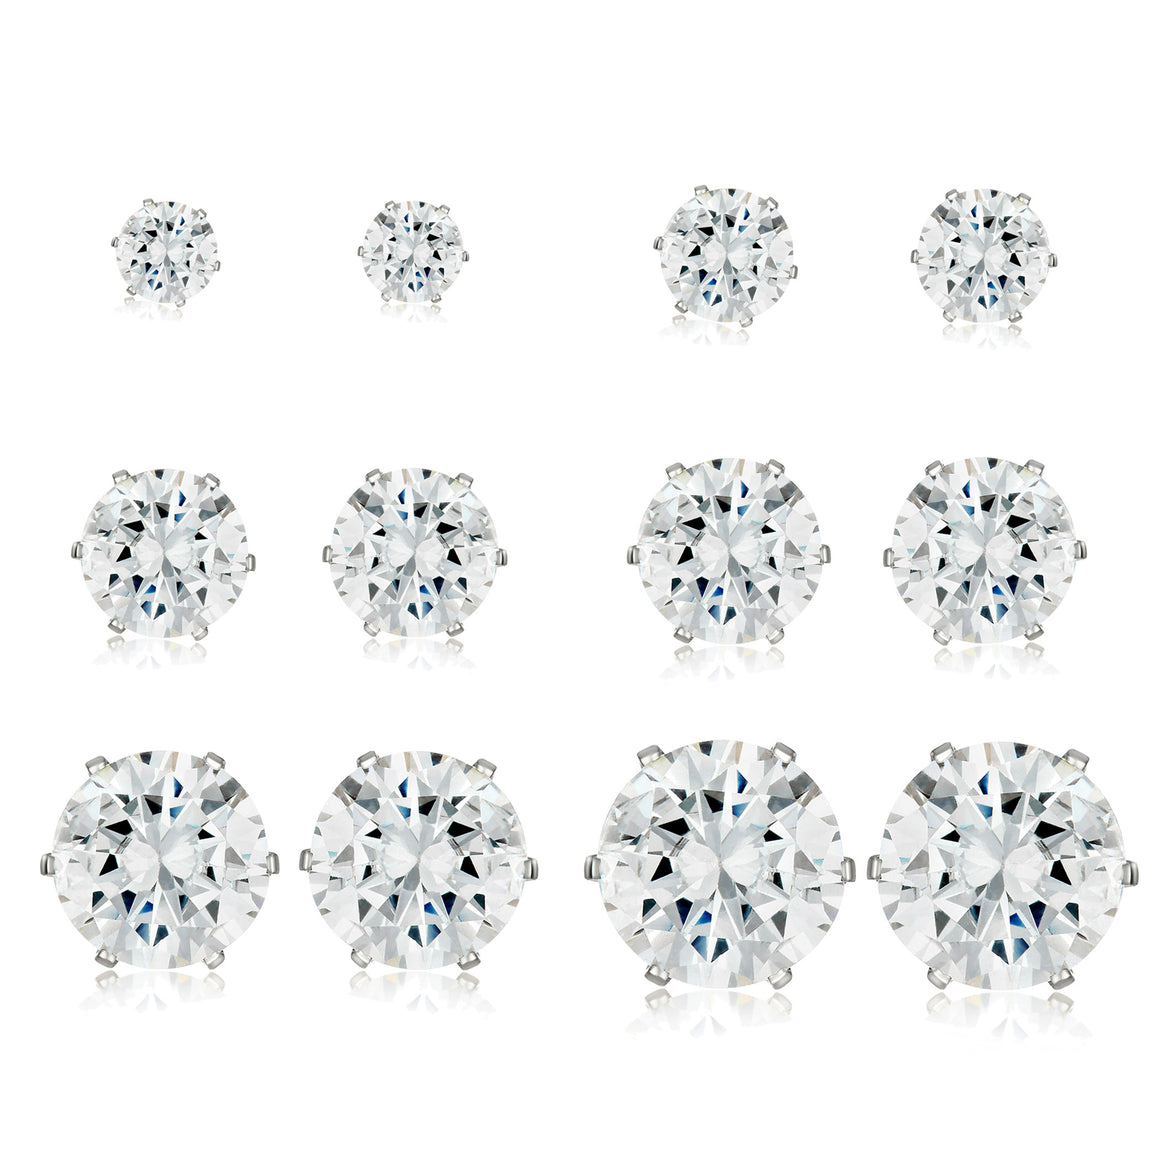 ELYA Women's High Polished Cubic Zirconia Stainless Steel Stud Earrings - 6 Pair set